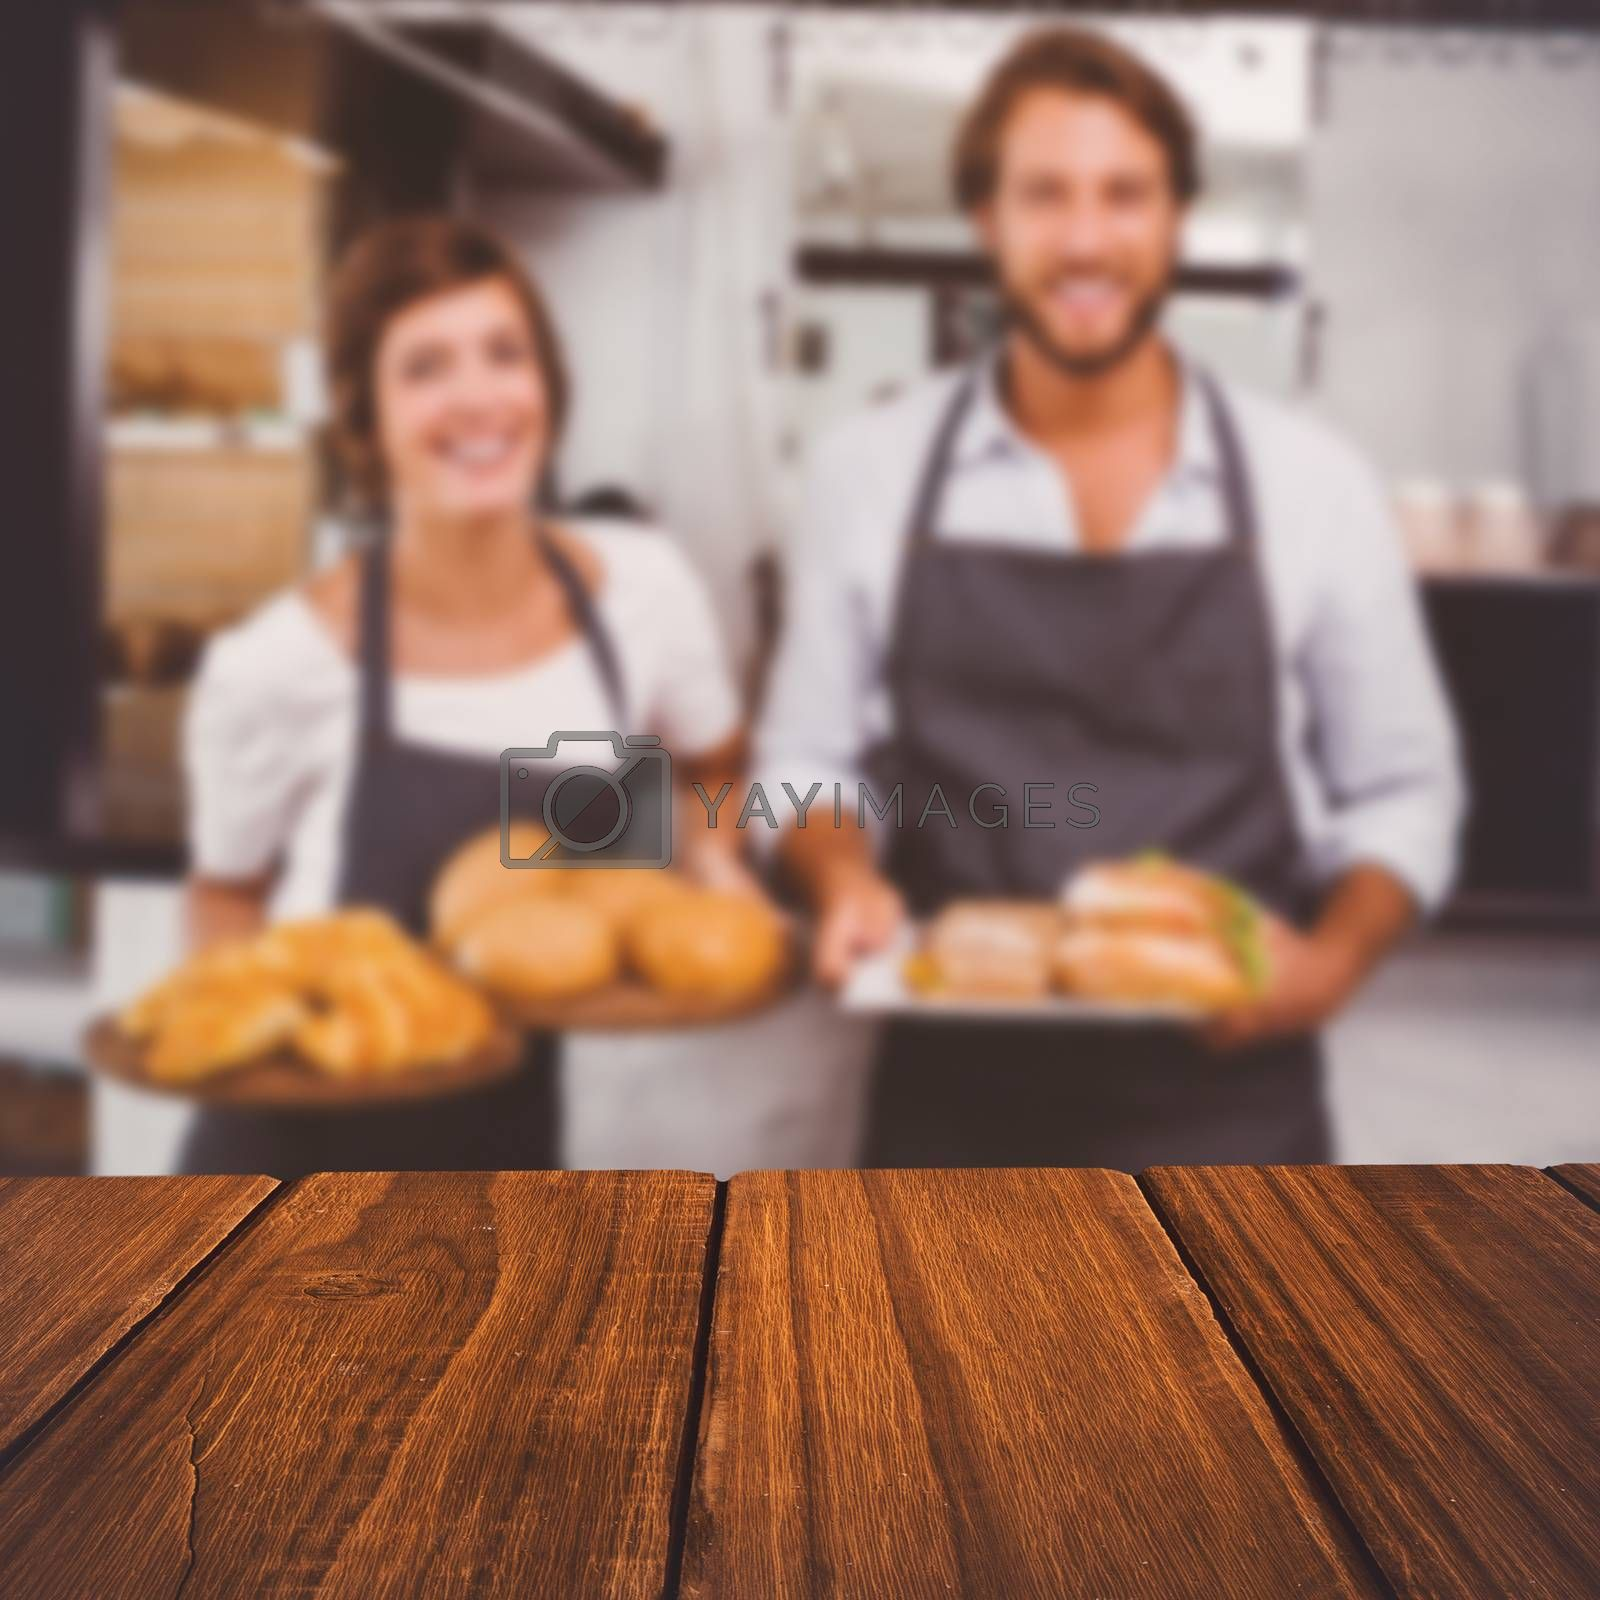 High angle view of hardwood floor against happy servers holding plates of food